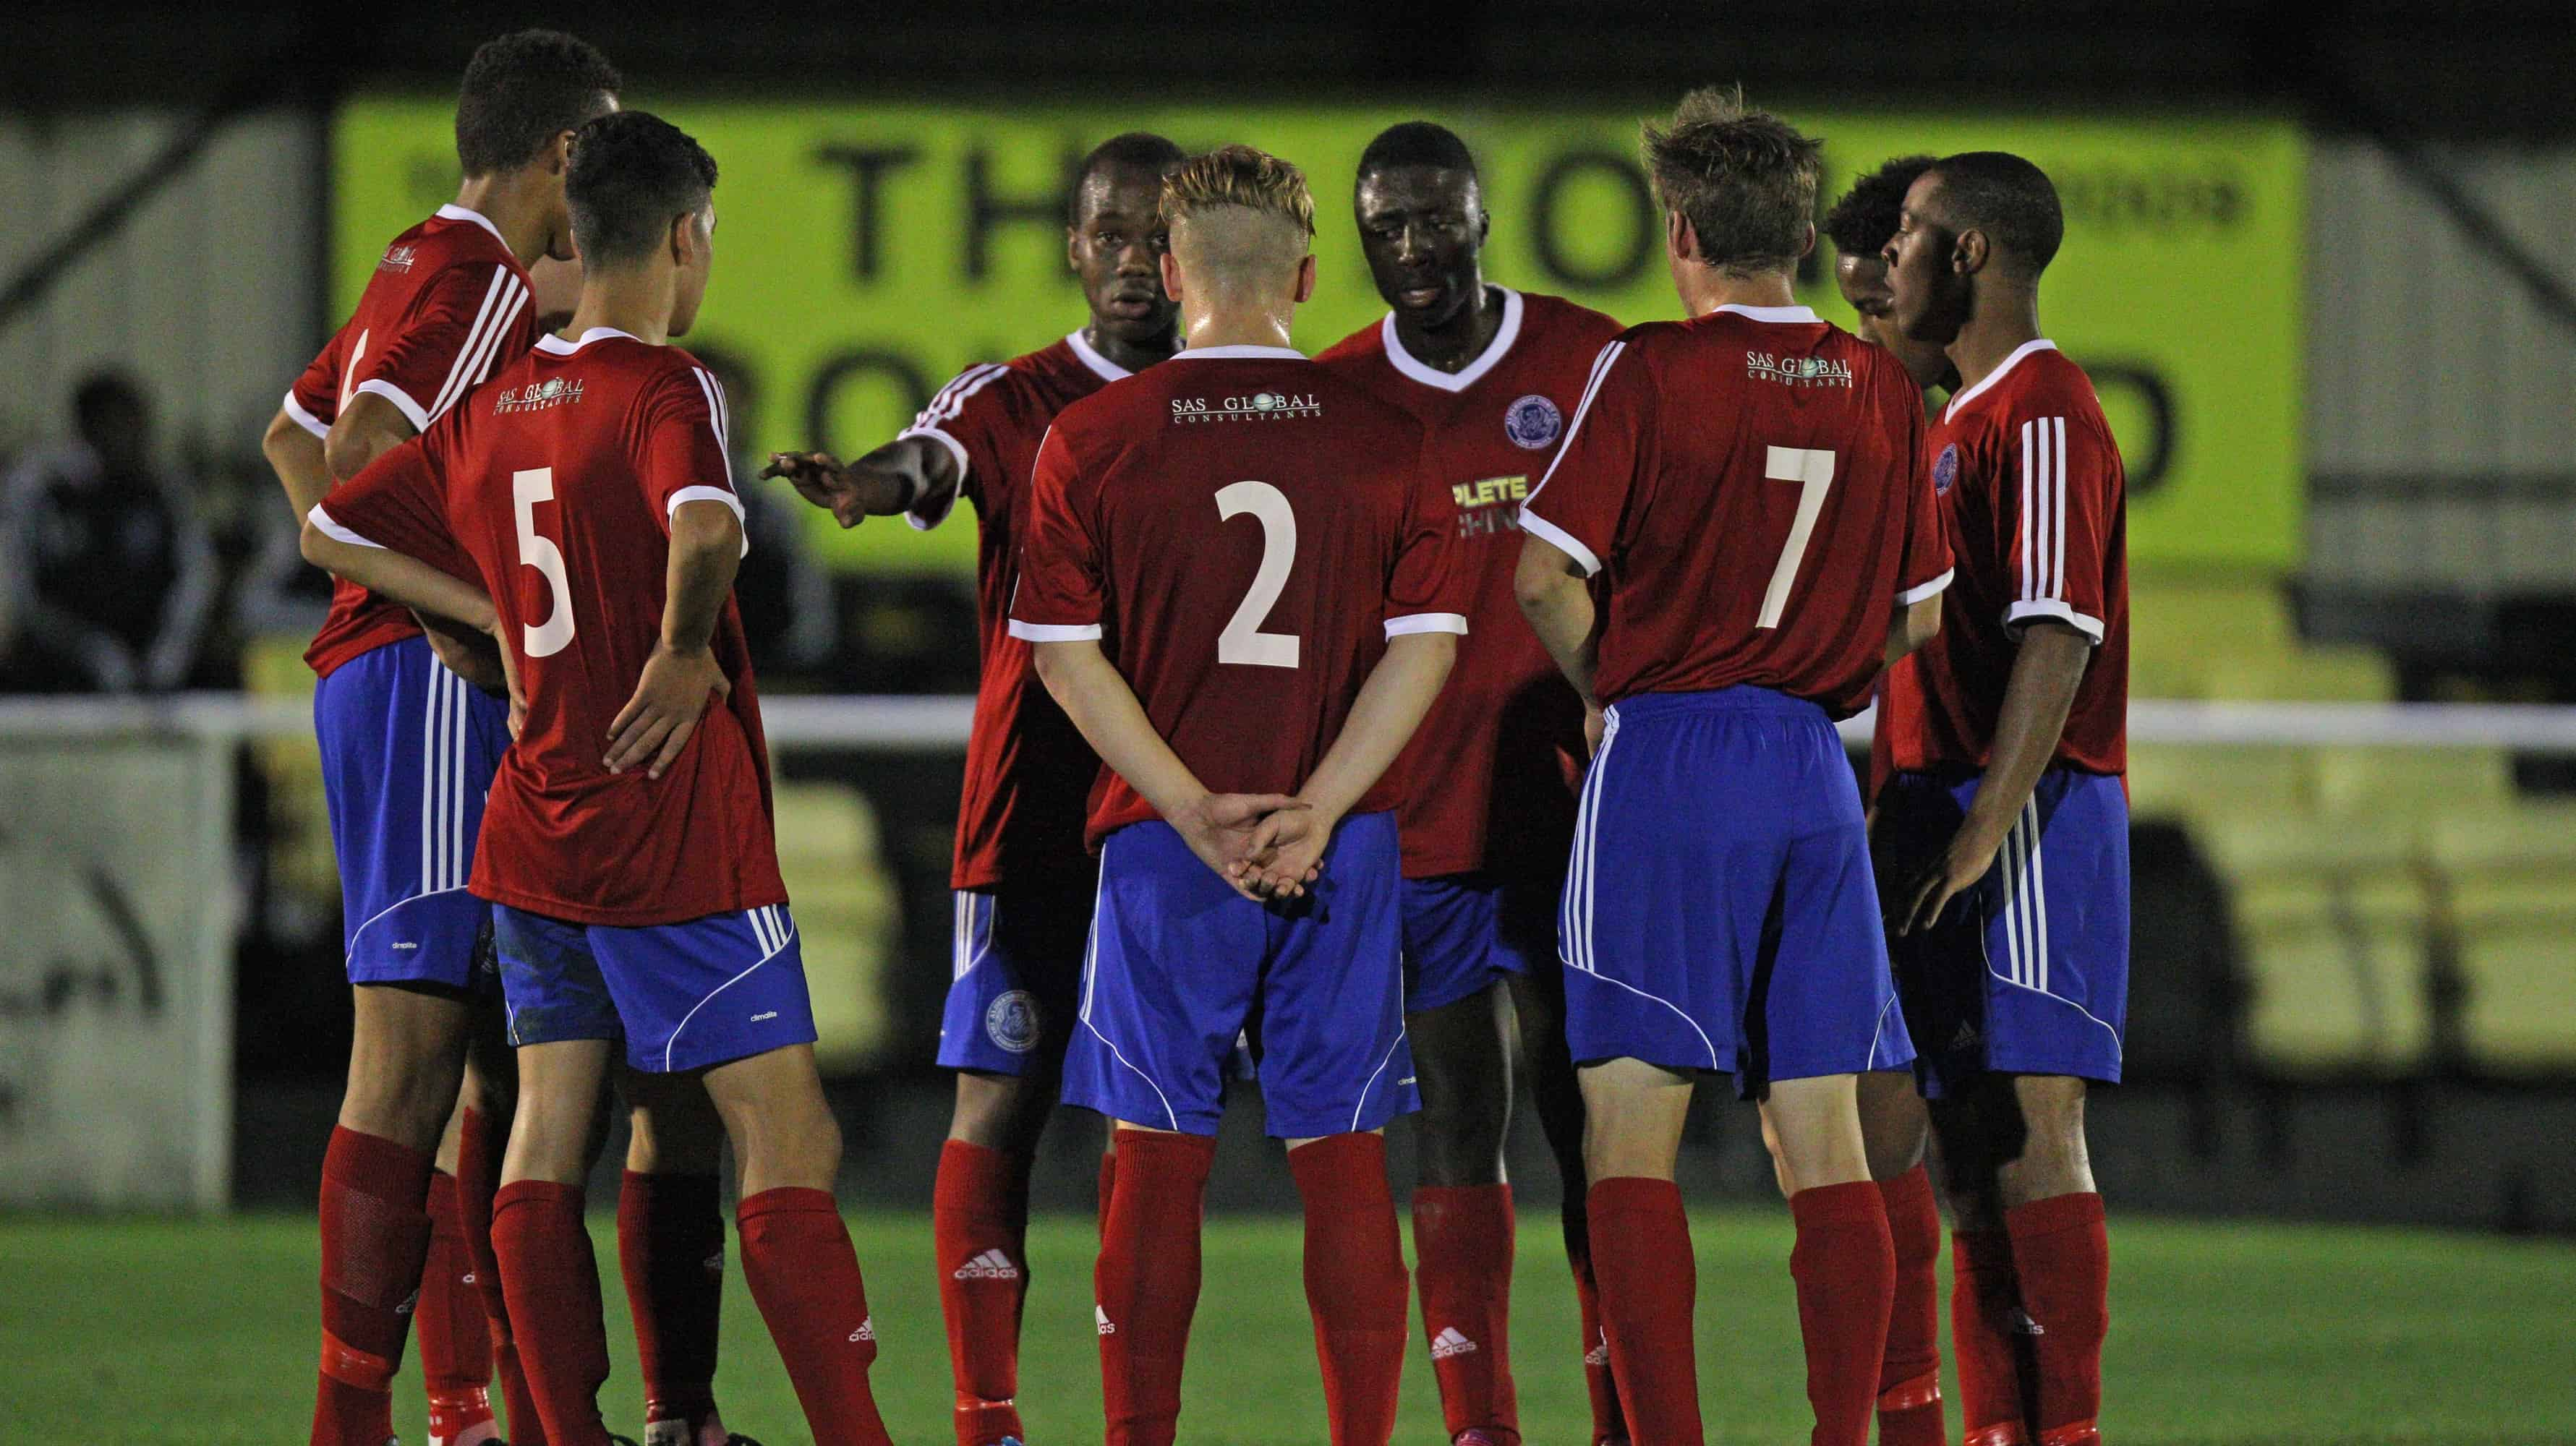 atfc v oxford city fa youth cup 23